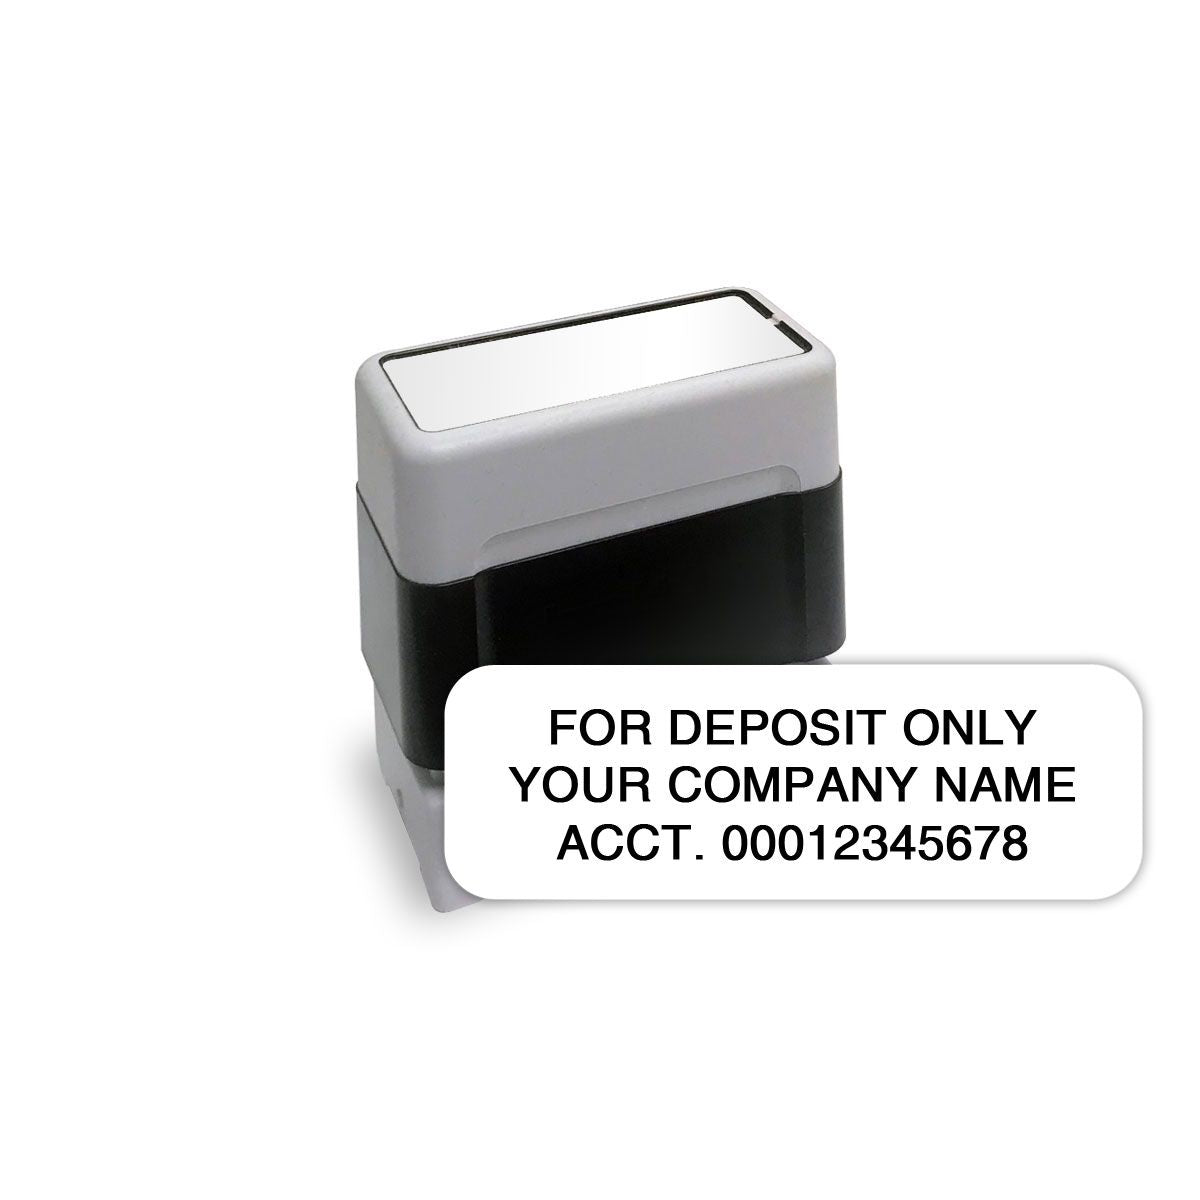 Self-Inking Endorsement Stamp, Small - Check Depot